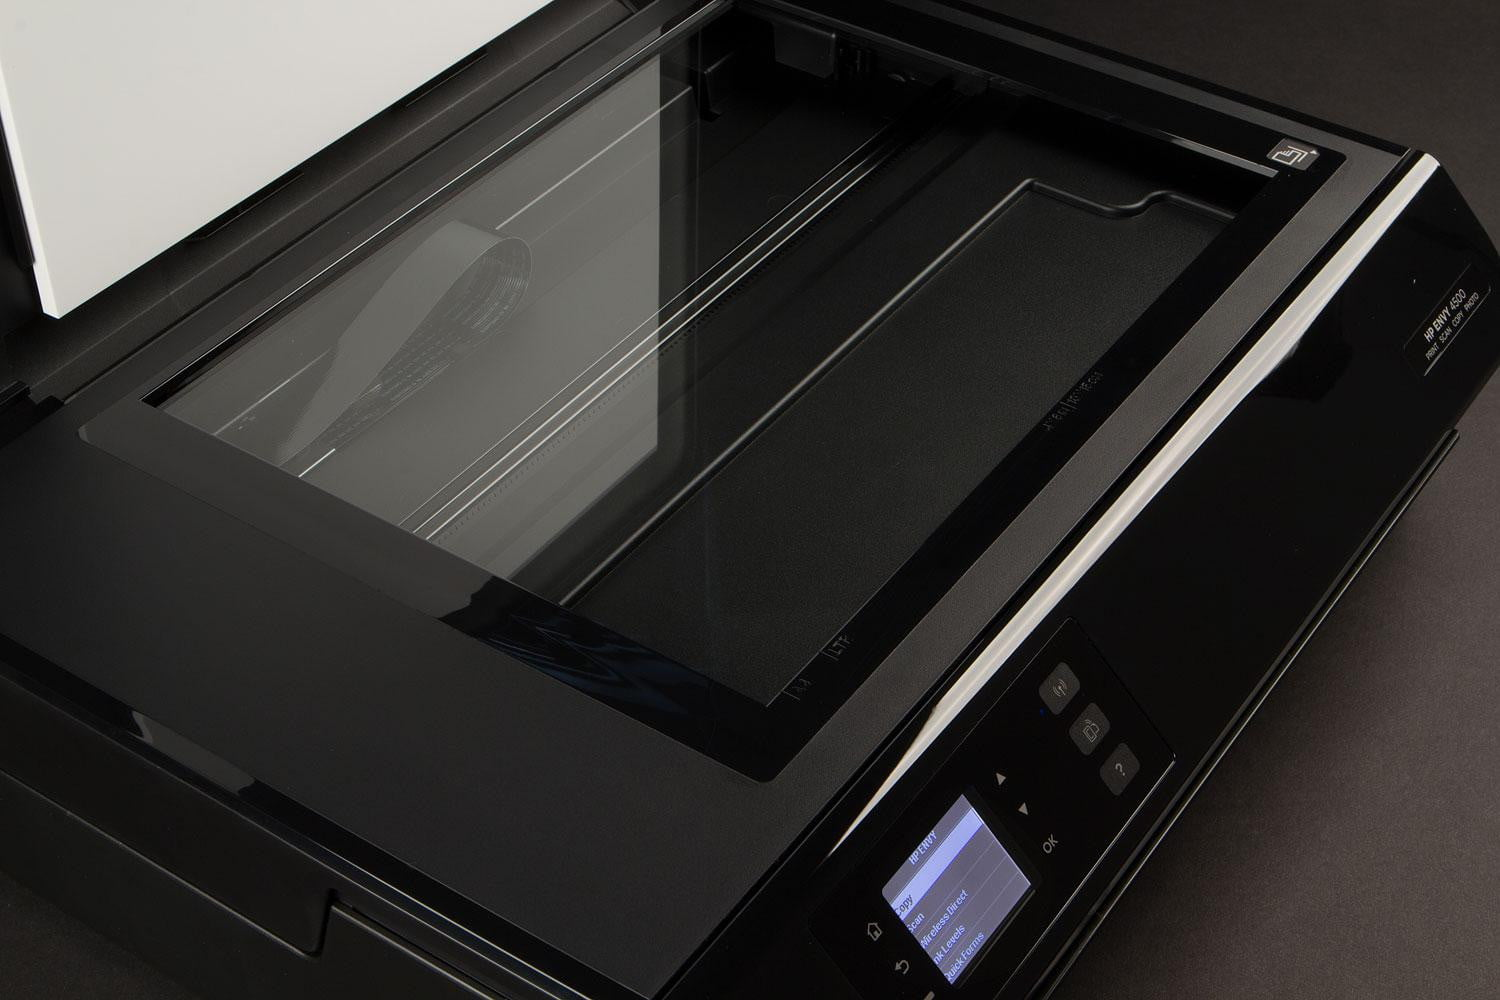 HP Envy 4500 Review – Remastering the Roots of Inkjet